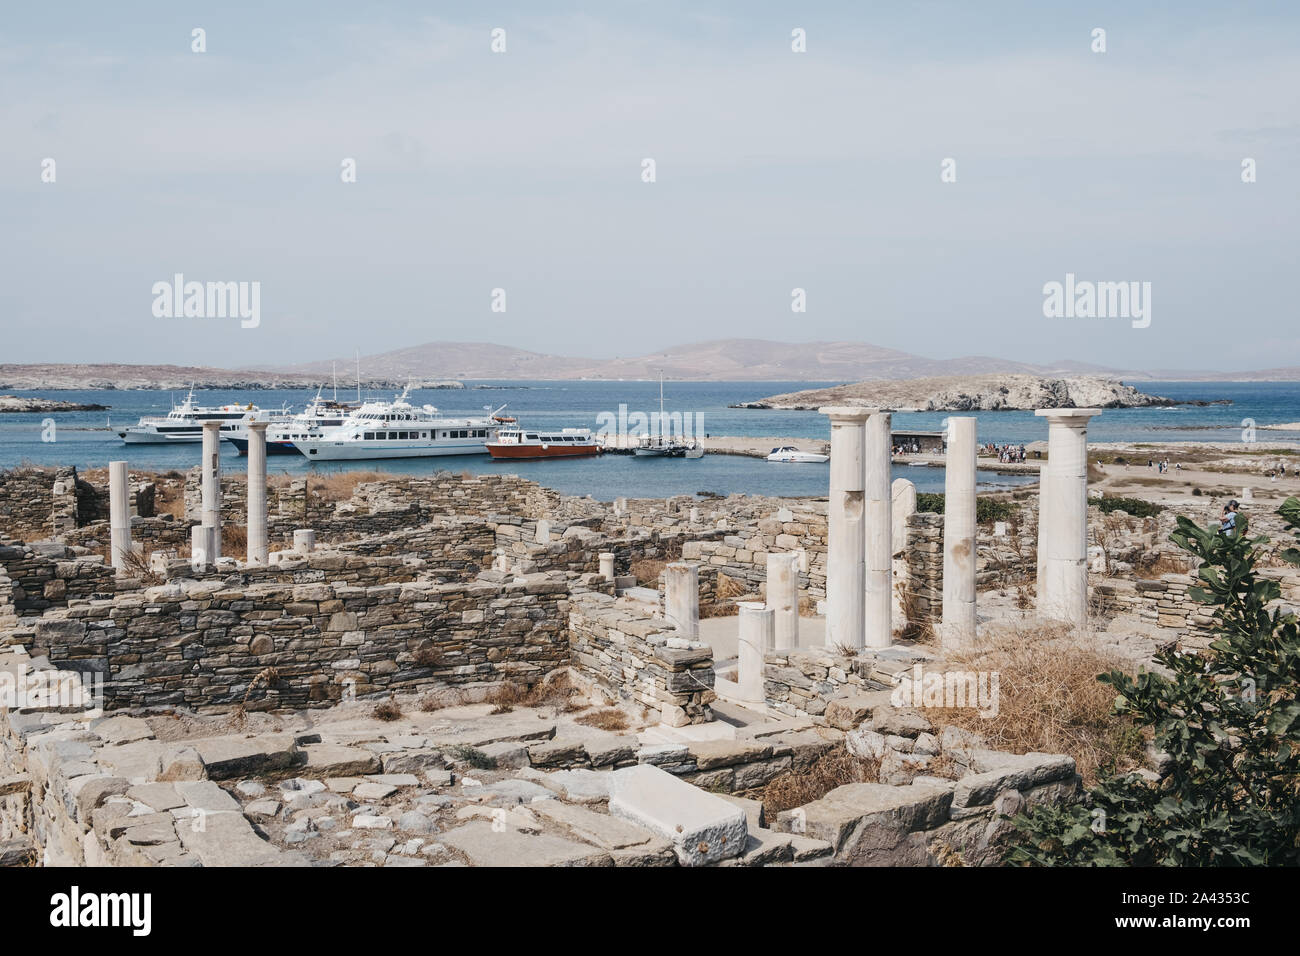 Delos, Greece - September 20, 2019: Ruins on the Island of Delos, archaeological site near Mykonos in the Aegean Sea Cyclades archipelago, tour boats Stock Photo